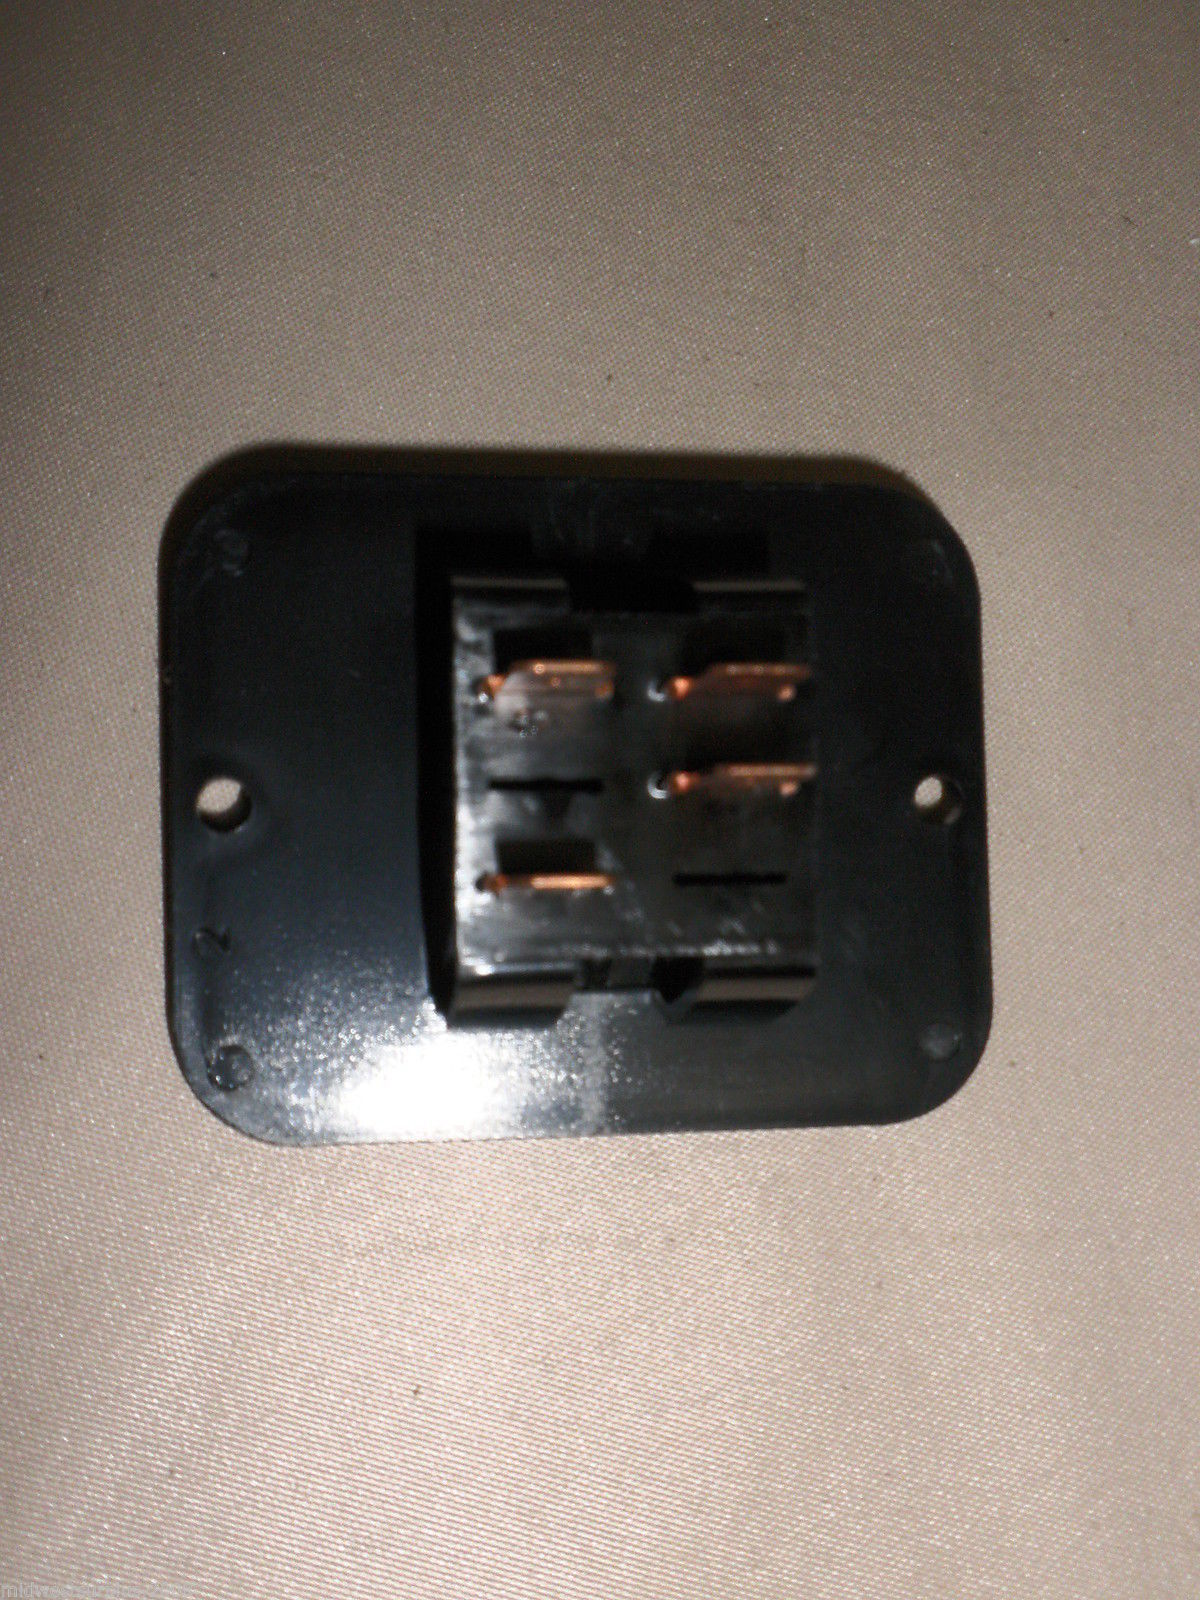 Atwood / Carling Black On / Off Switch With Light Indicator